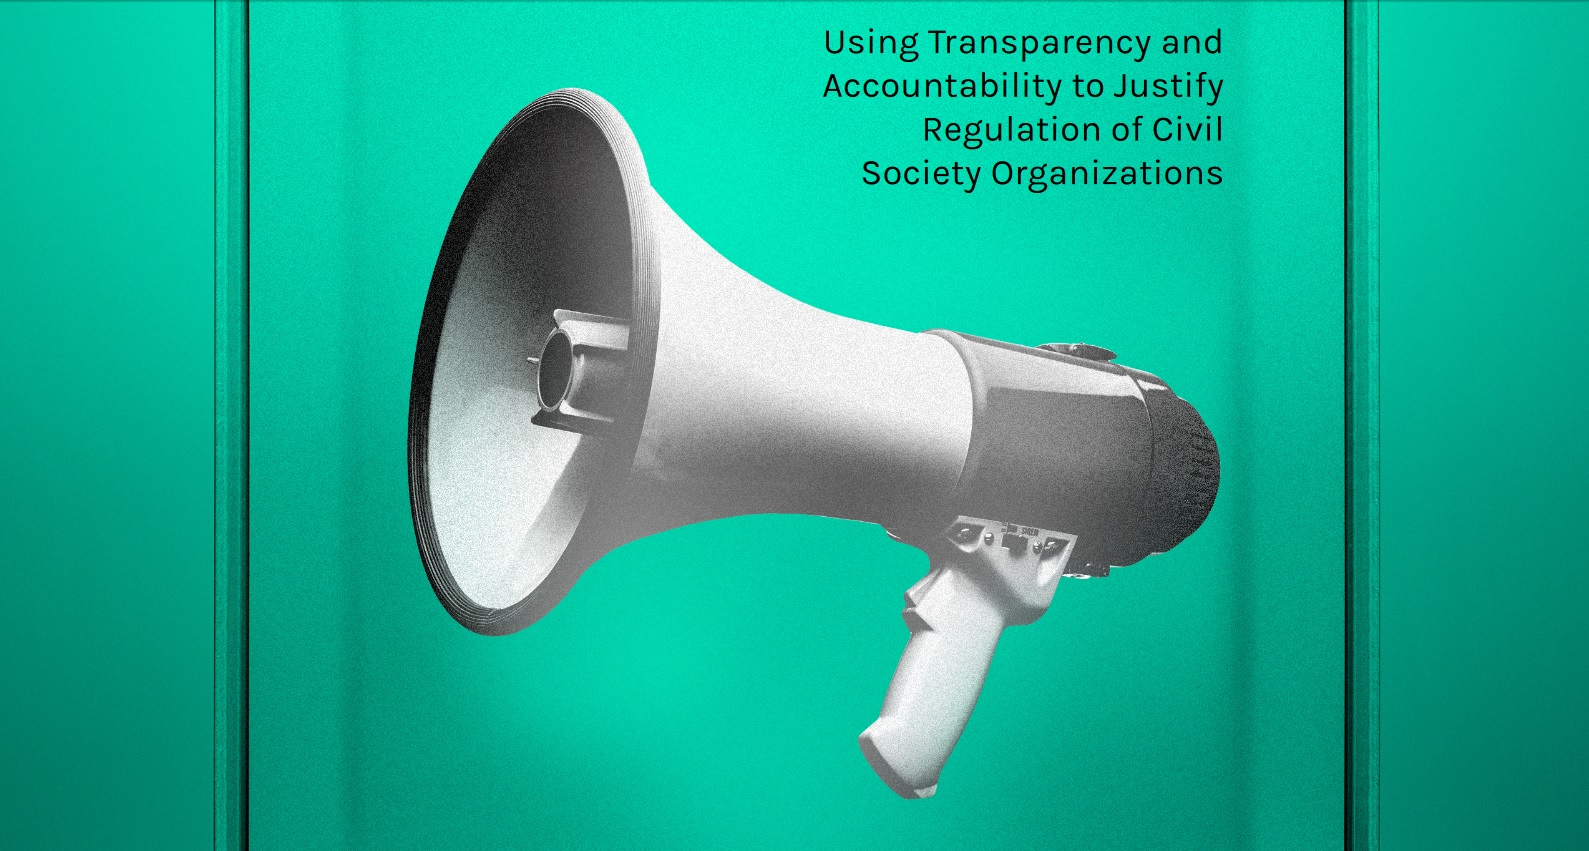 Distract, Divide, Detach: Using Transparency and Accountability to Justify CSO Regulation